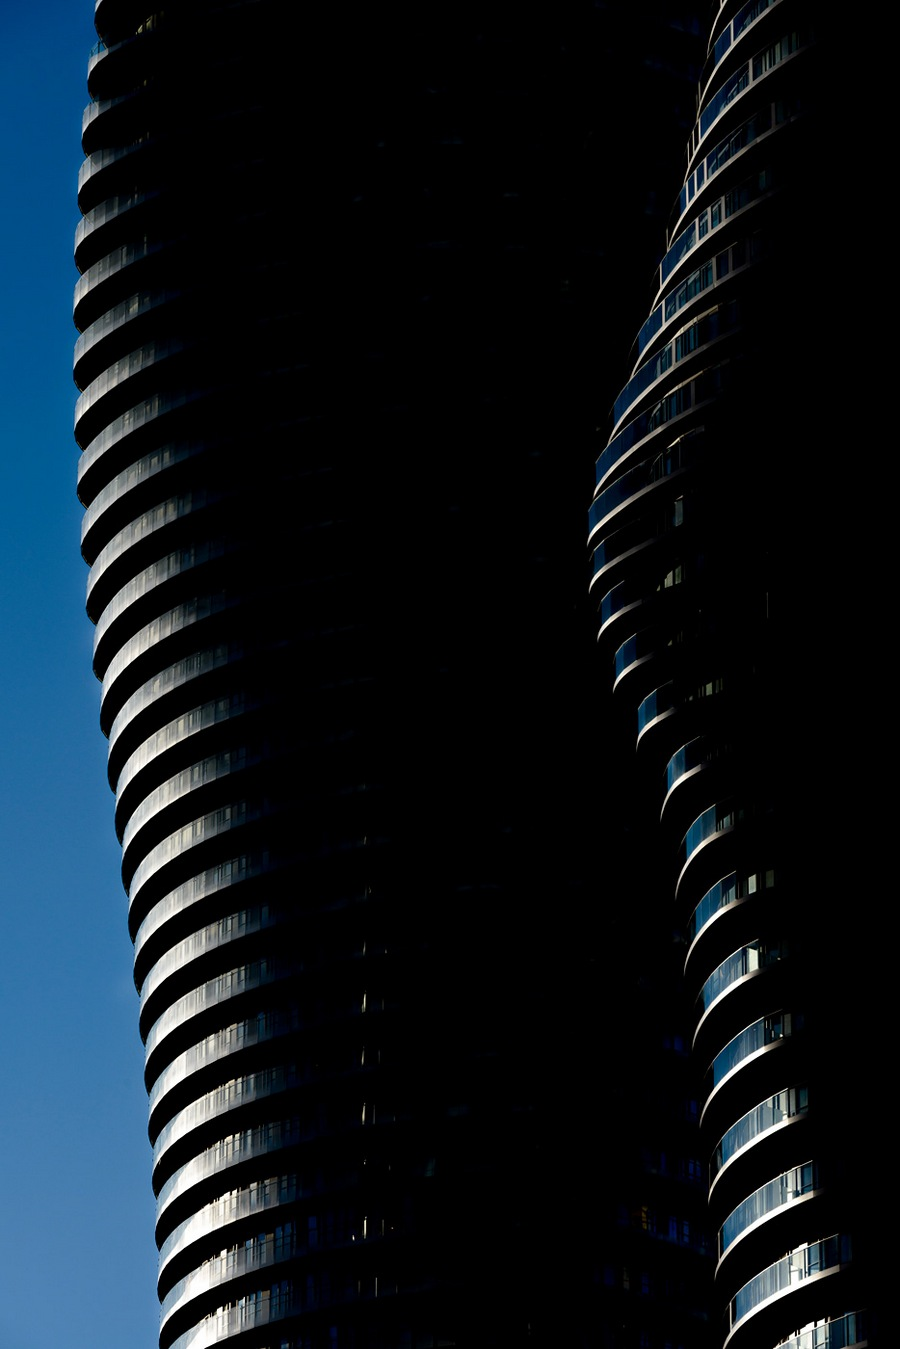 Shortlisted: Large + Bounhar. Exteriors. Project: Absolute Towers (CANADA) by MAD Architects